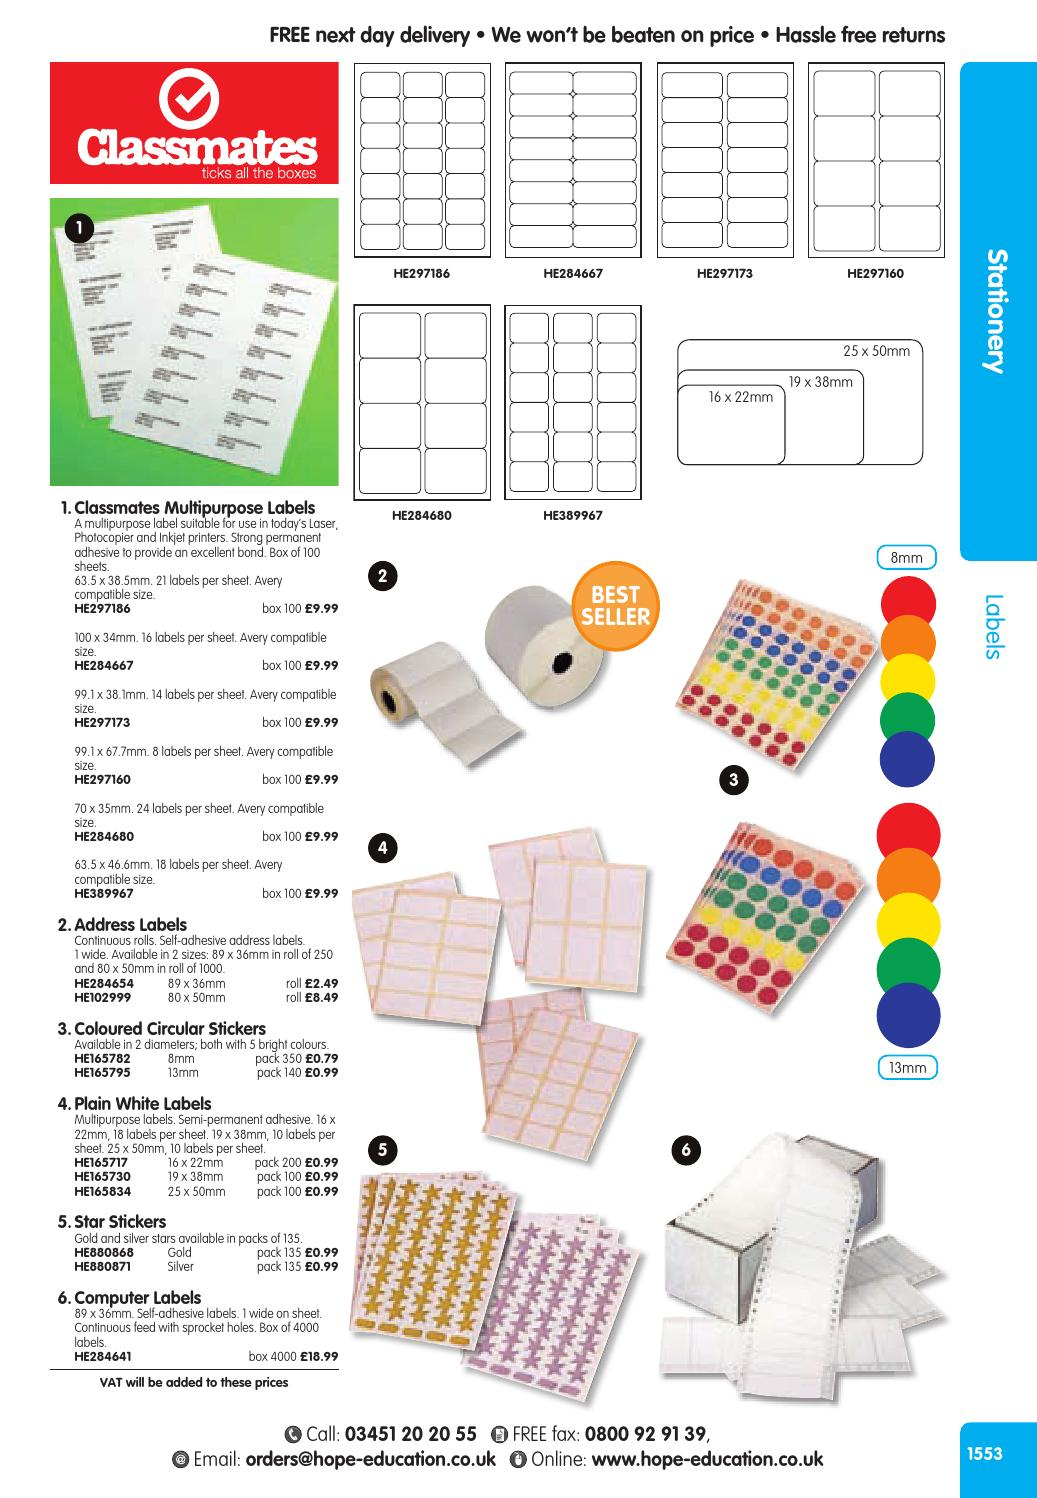 Hope Education Catalogue 2016/17 - Stationery by Findel Ltd